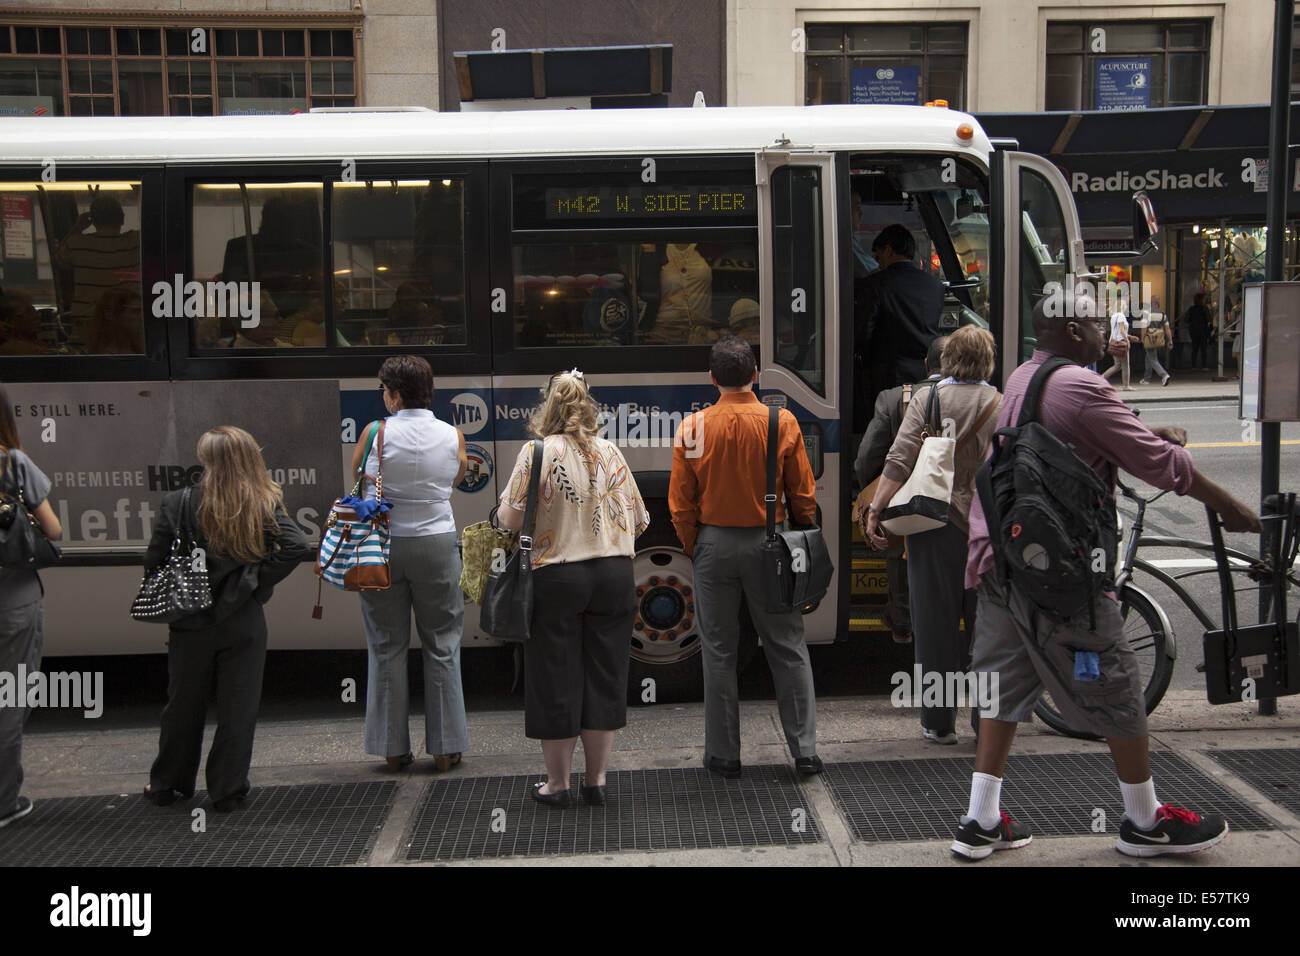 People waiting for a crosstown bus along 42nd Street in Manhattan, NYC. - Stock Image